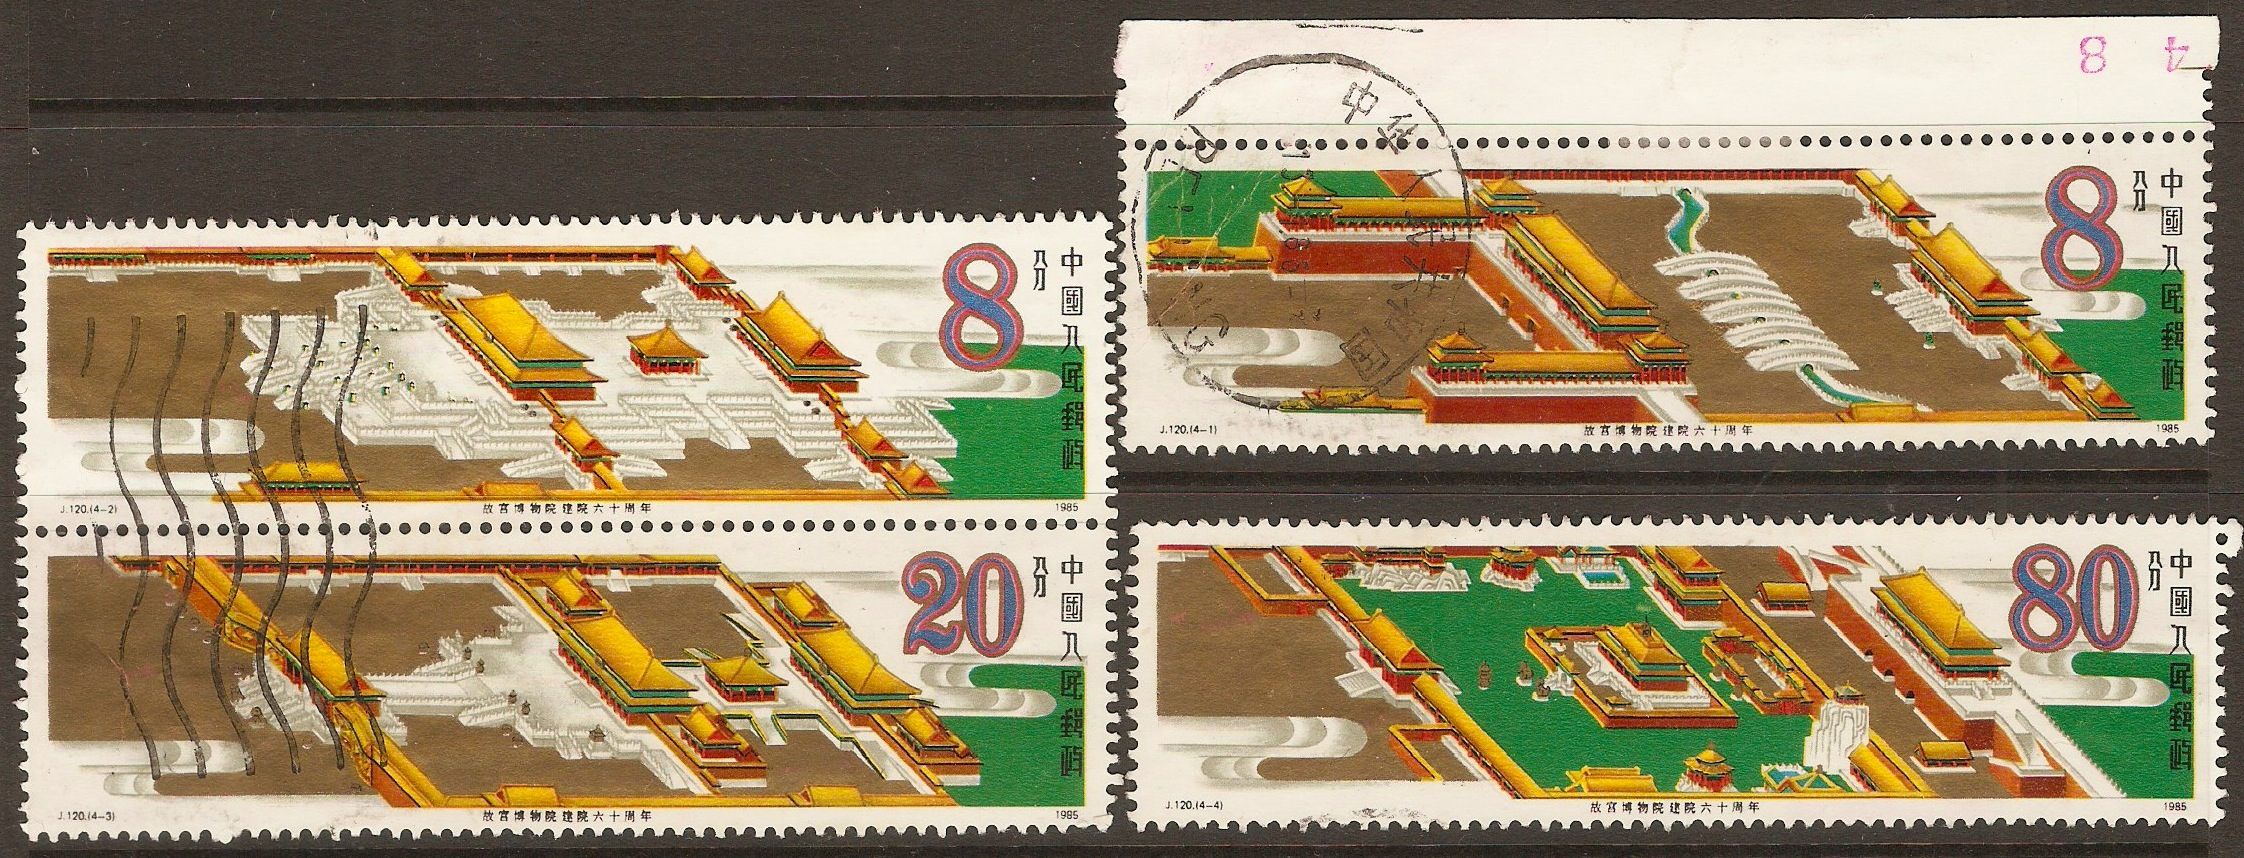 China 1985 Palace Museum Anniversary set. SG3415-SG3418.